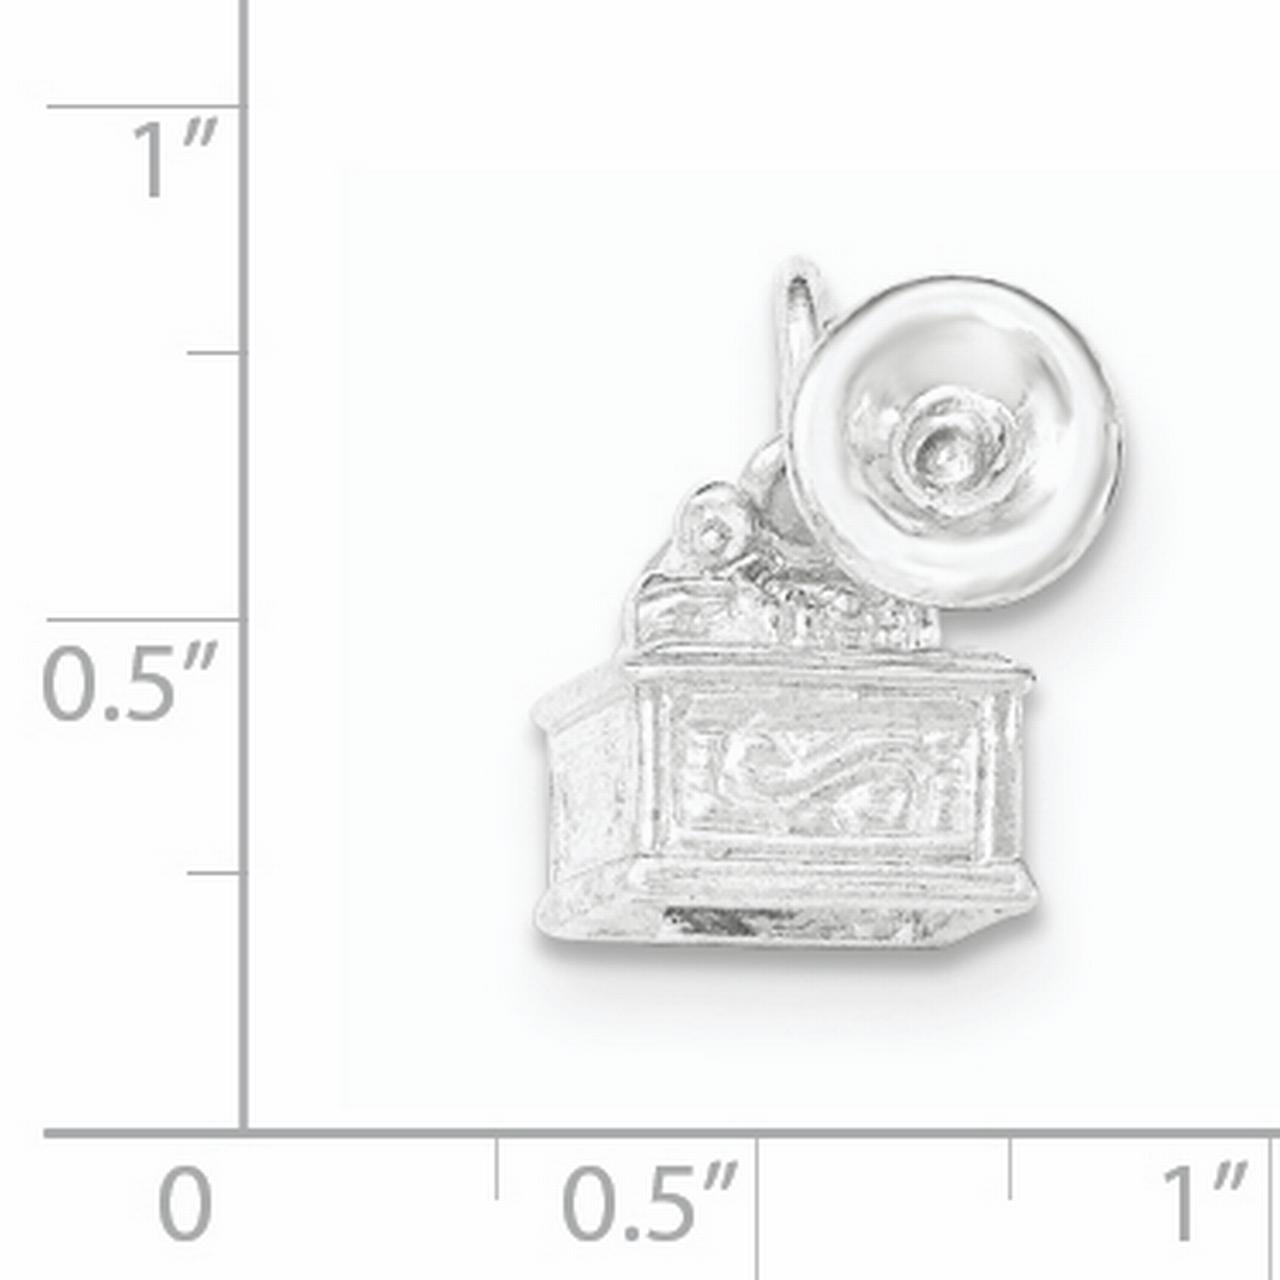 925 Sterling Silver Textured Photograph Pendant Charm Necklace Musical Fine Jewelry Gifts For Women For Her - image 1 de 2